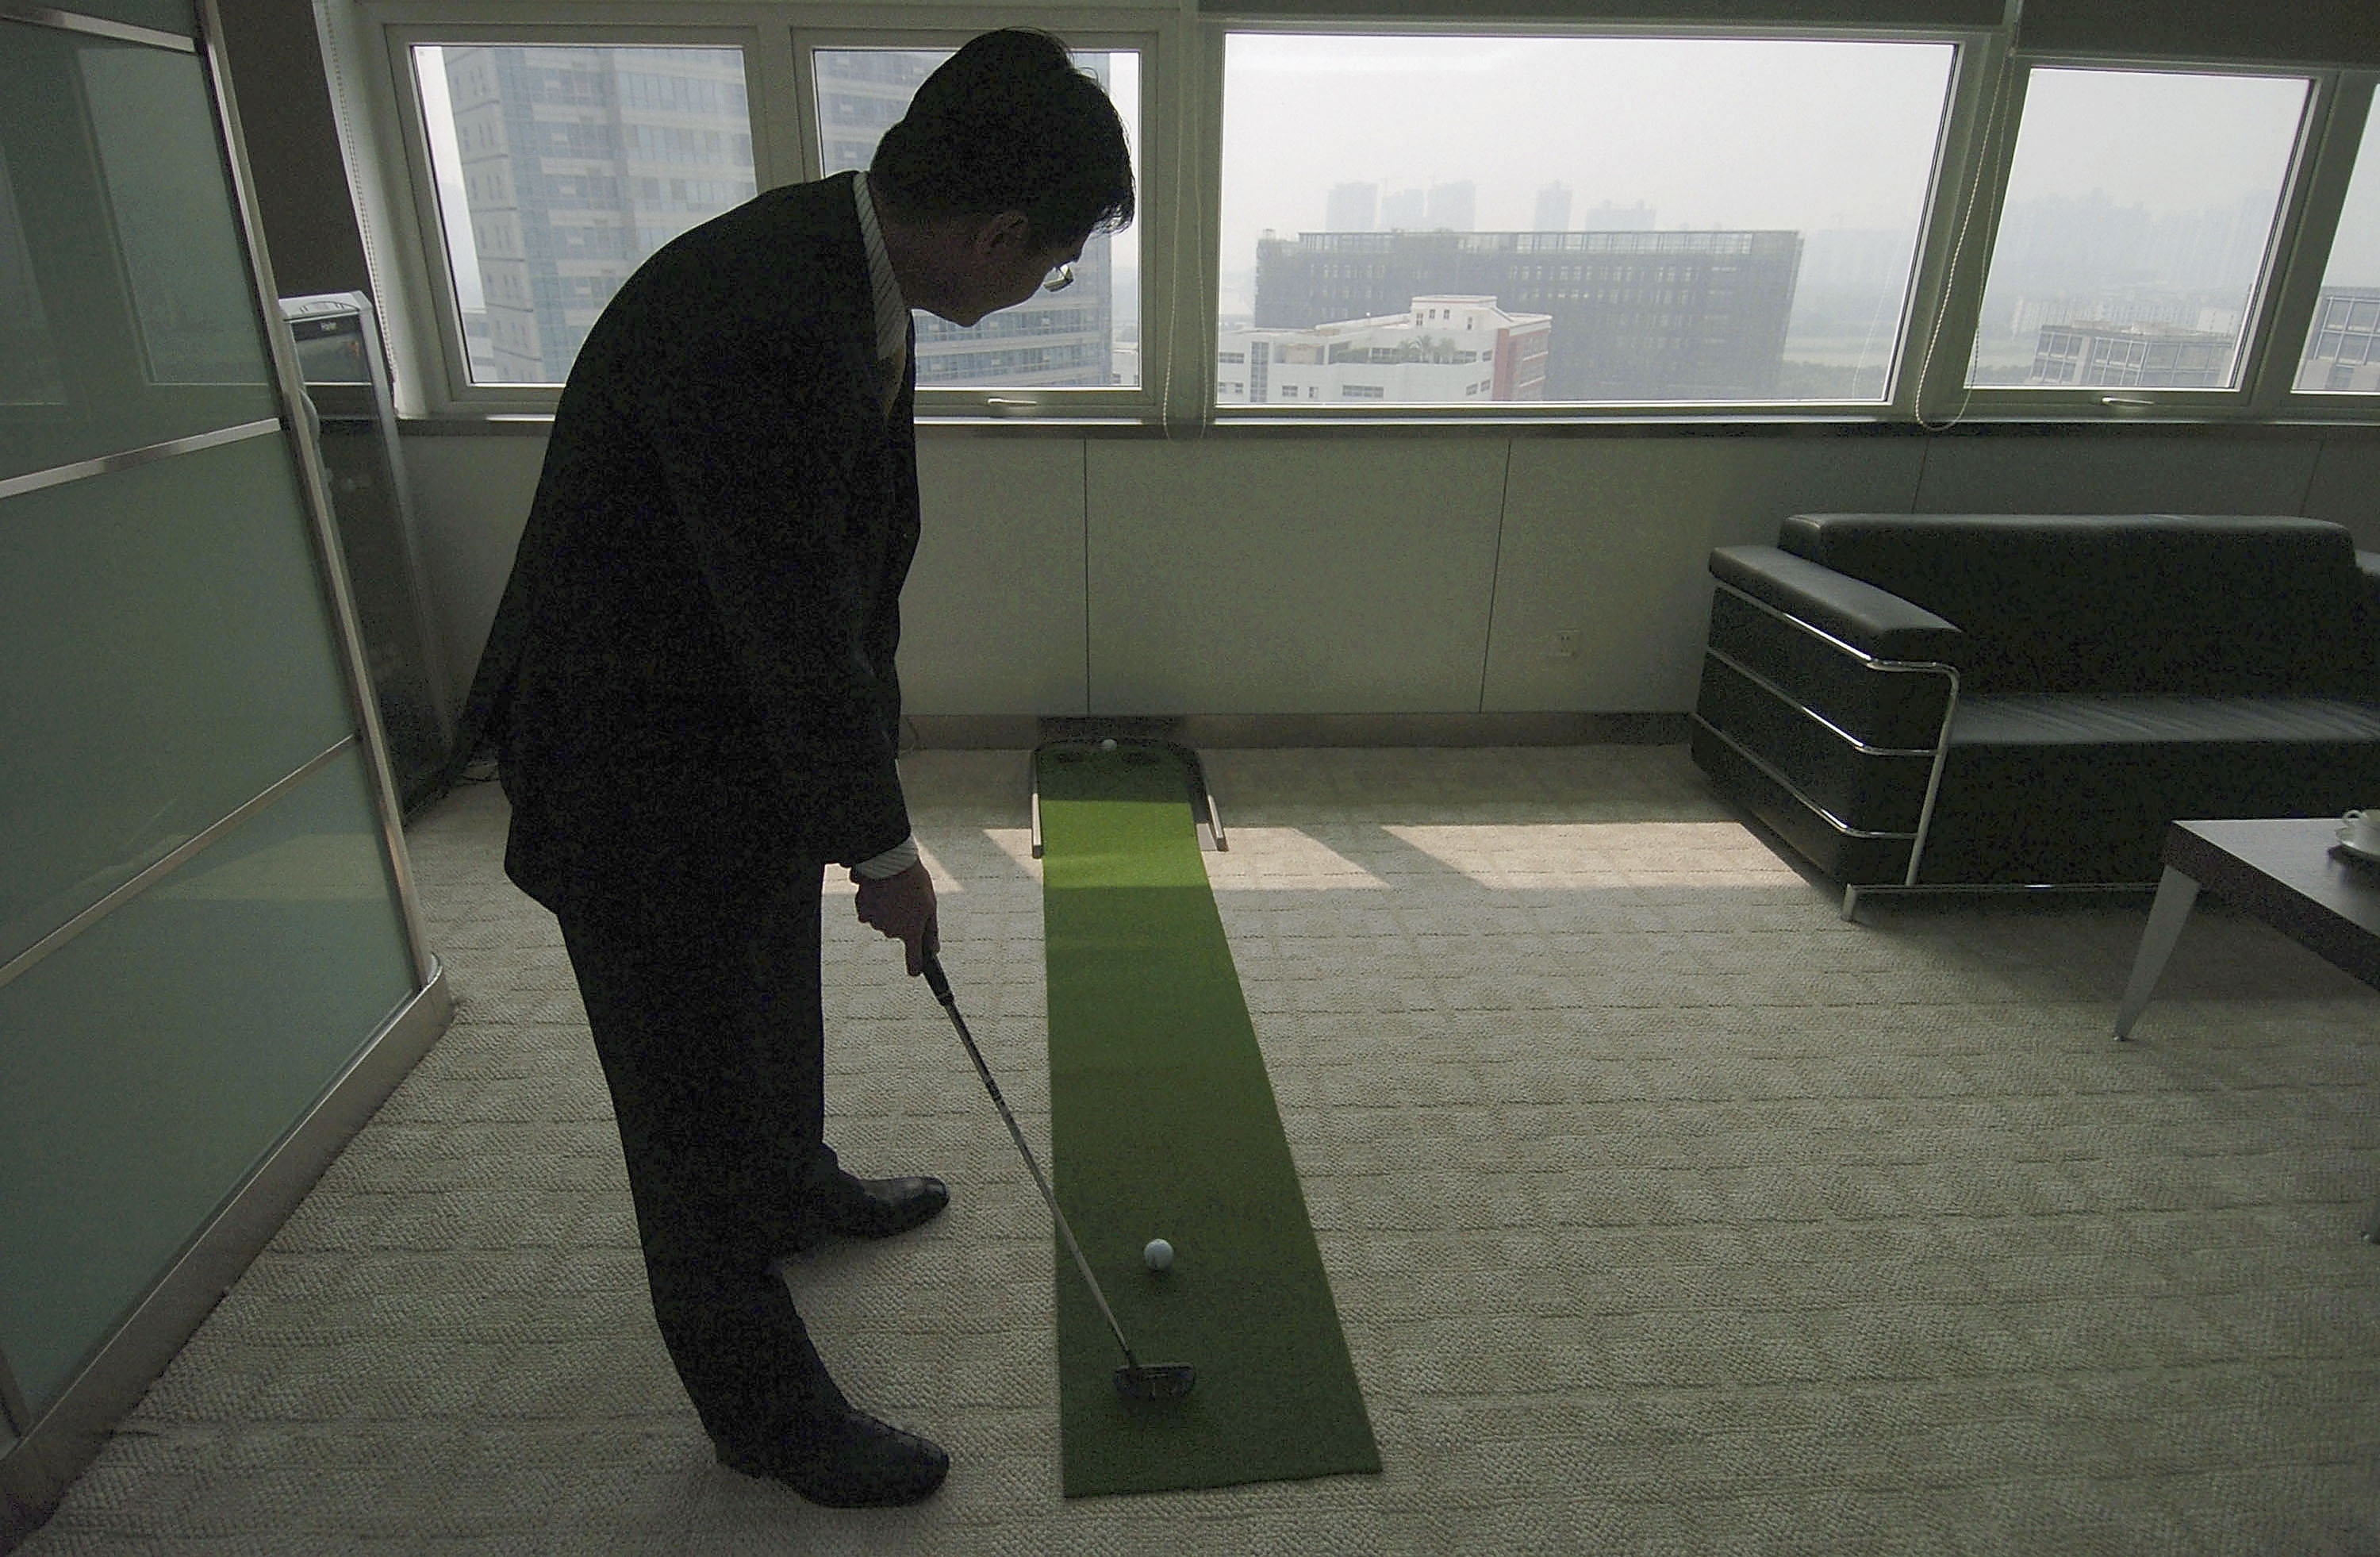 Best winter practice drills to do at home | GolfMagic